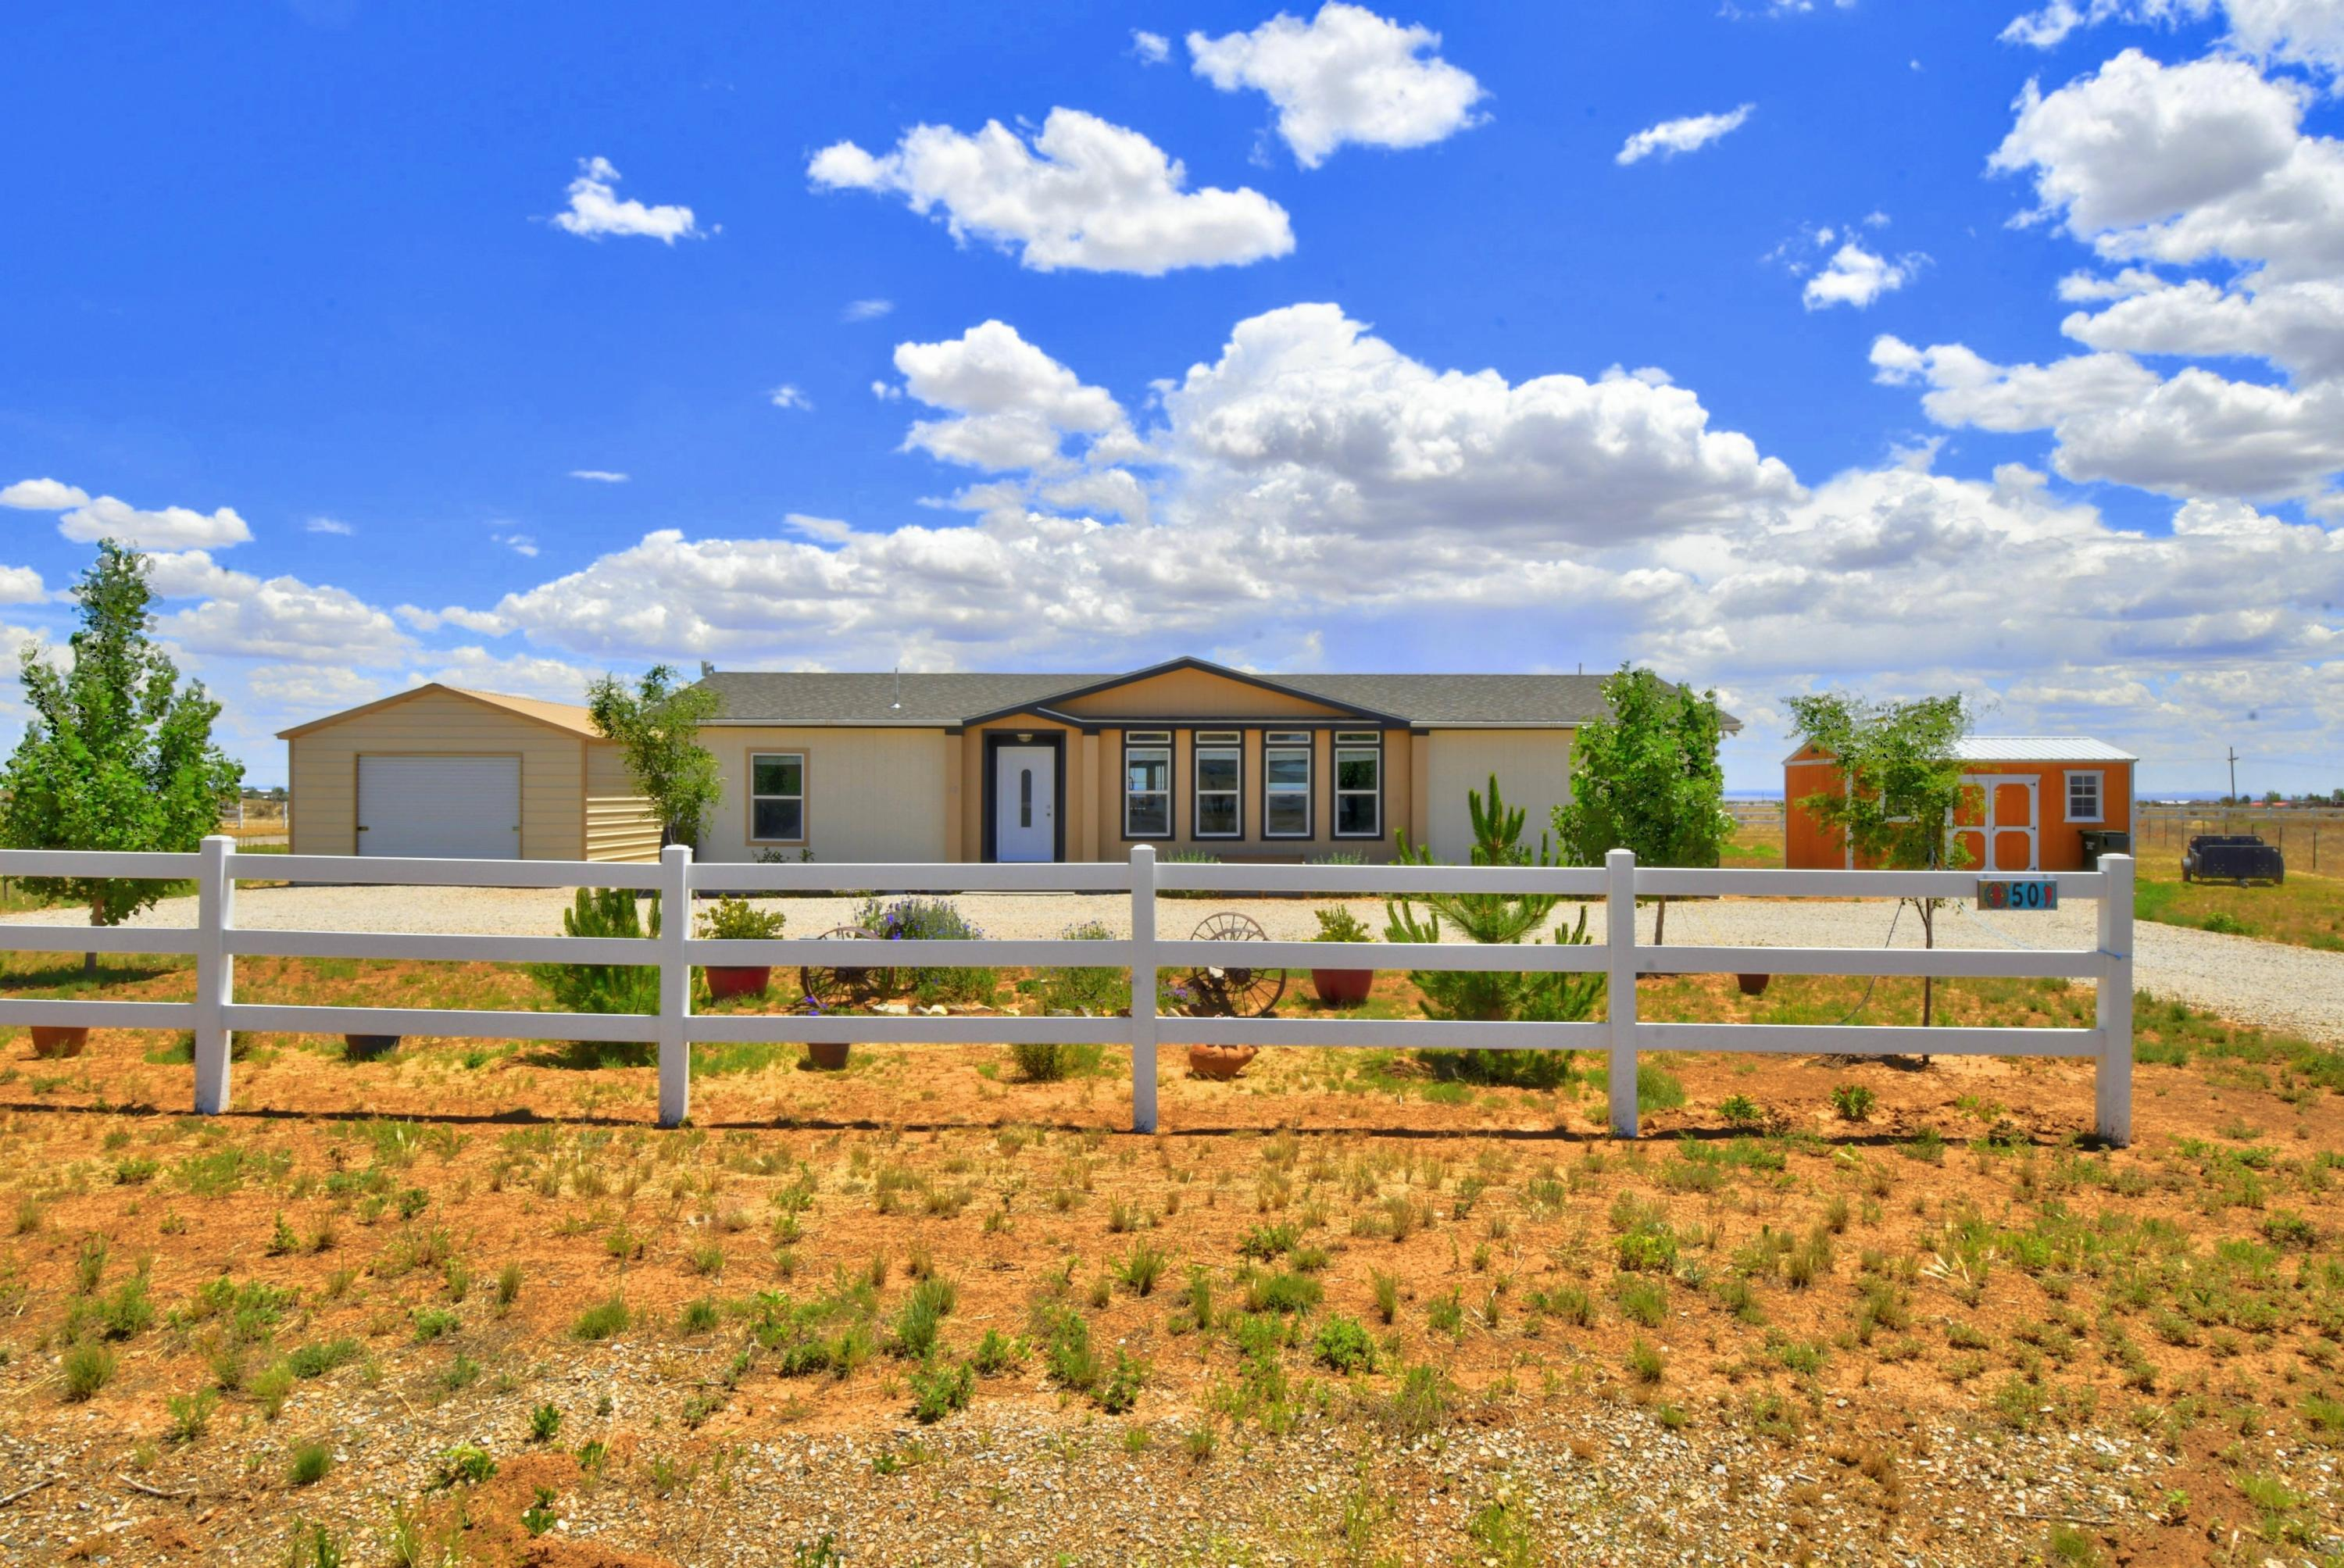 50 EQUESTRIAN PARK Road Property Photo - Edgewood, NM real estate listing